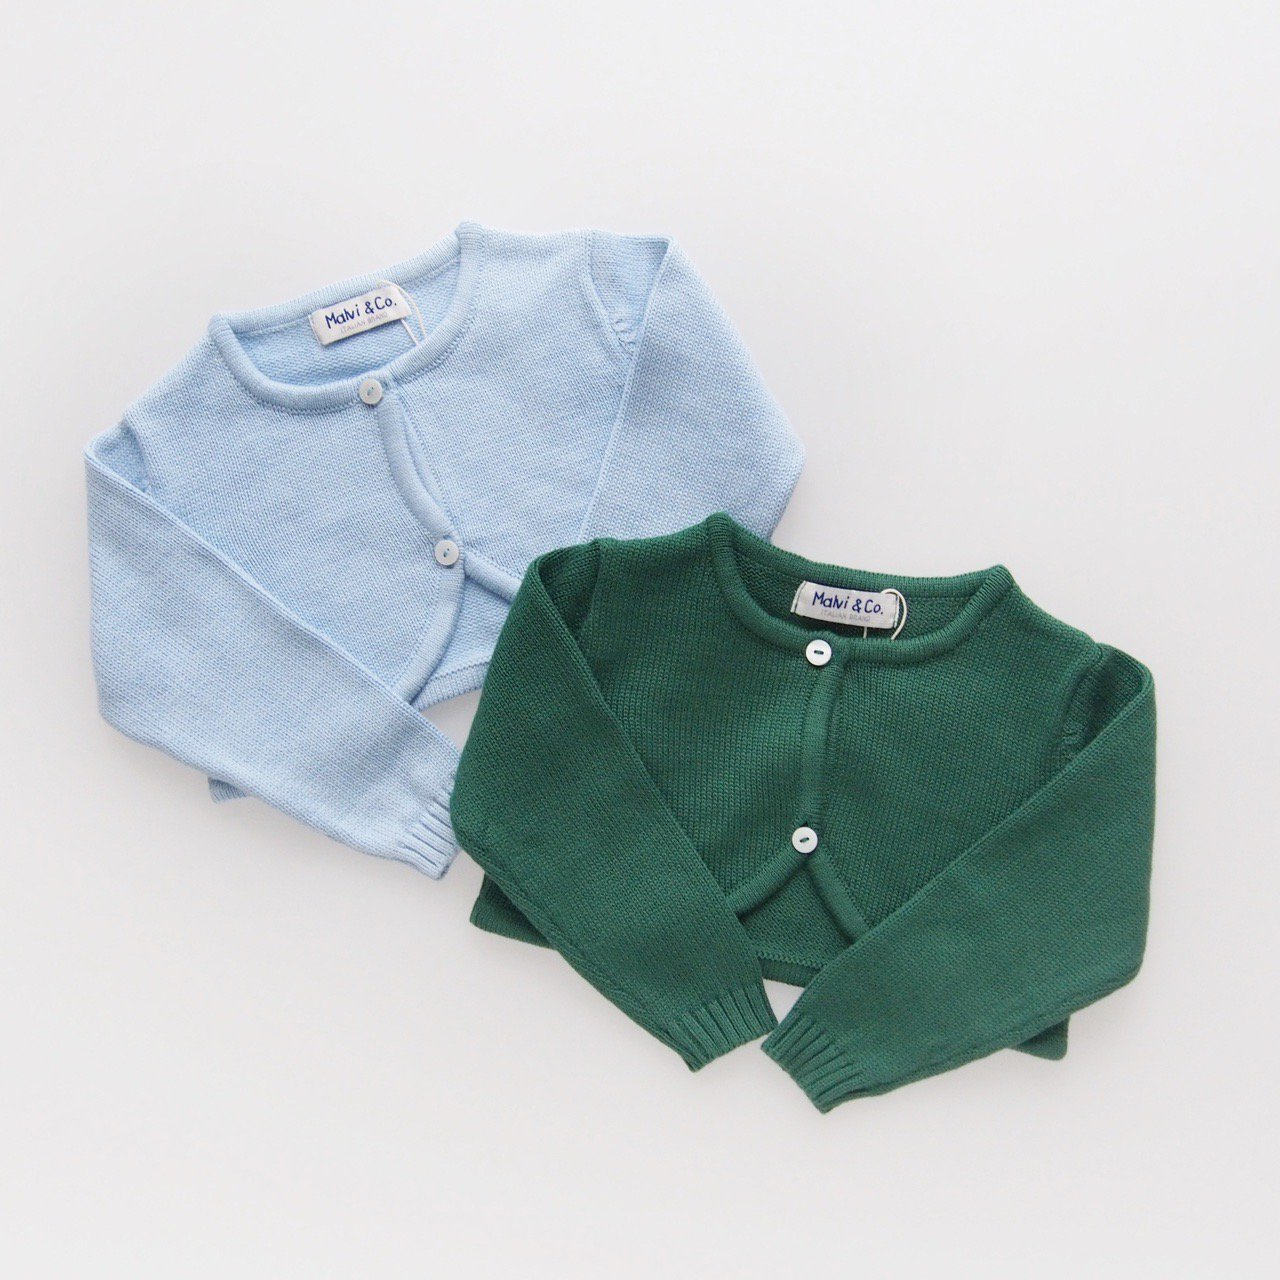 <img class='new_mark_img1' src='https://img.shop-pro.jp/img/new/icons14.gif' style='border:none;display:inline;margin:0px;padding:0px;width:auto;' />Malvi&Co. - Cotton bolero (Green/ Pale blue)